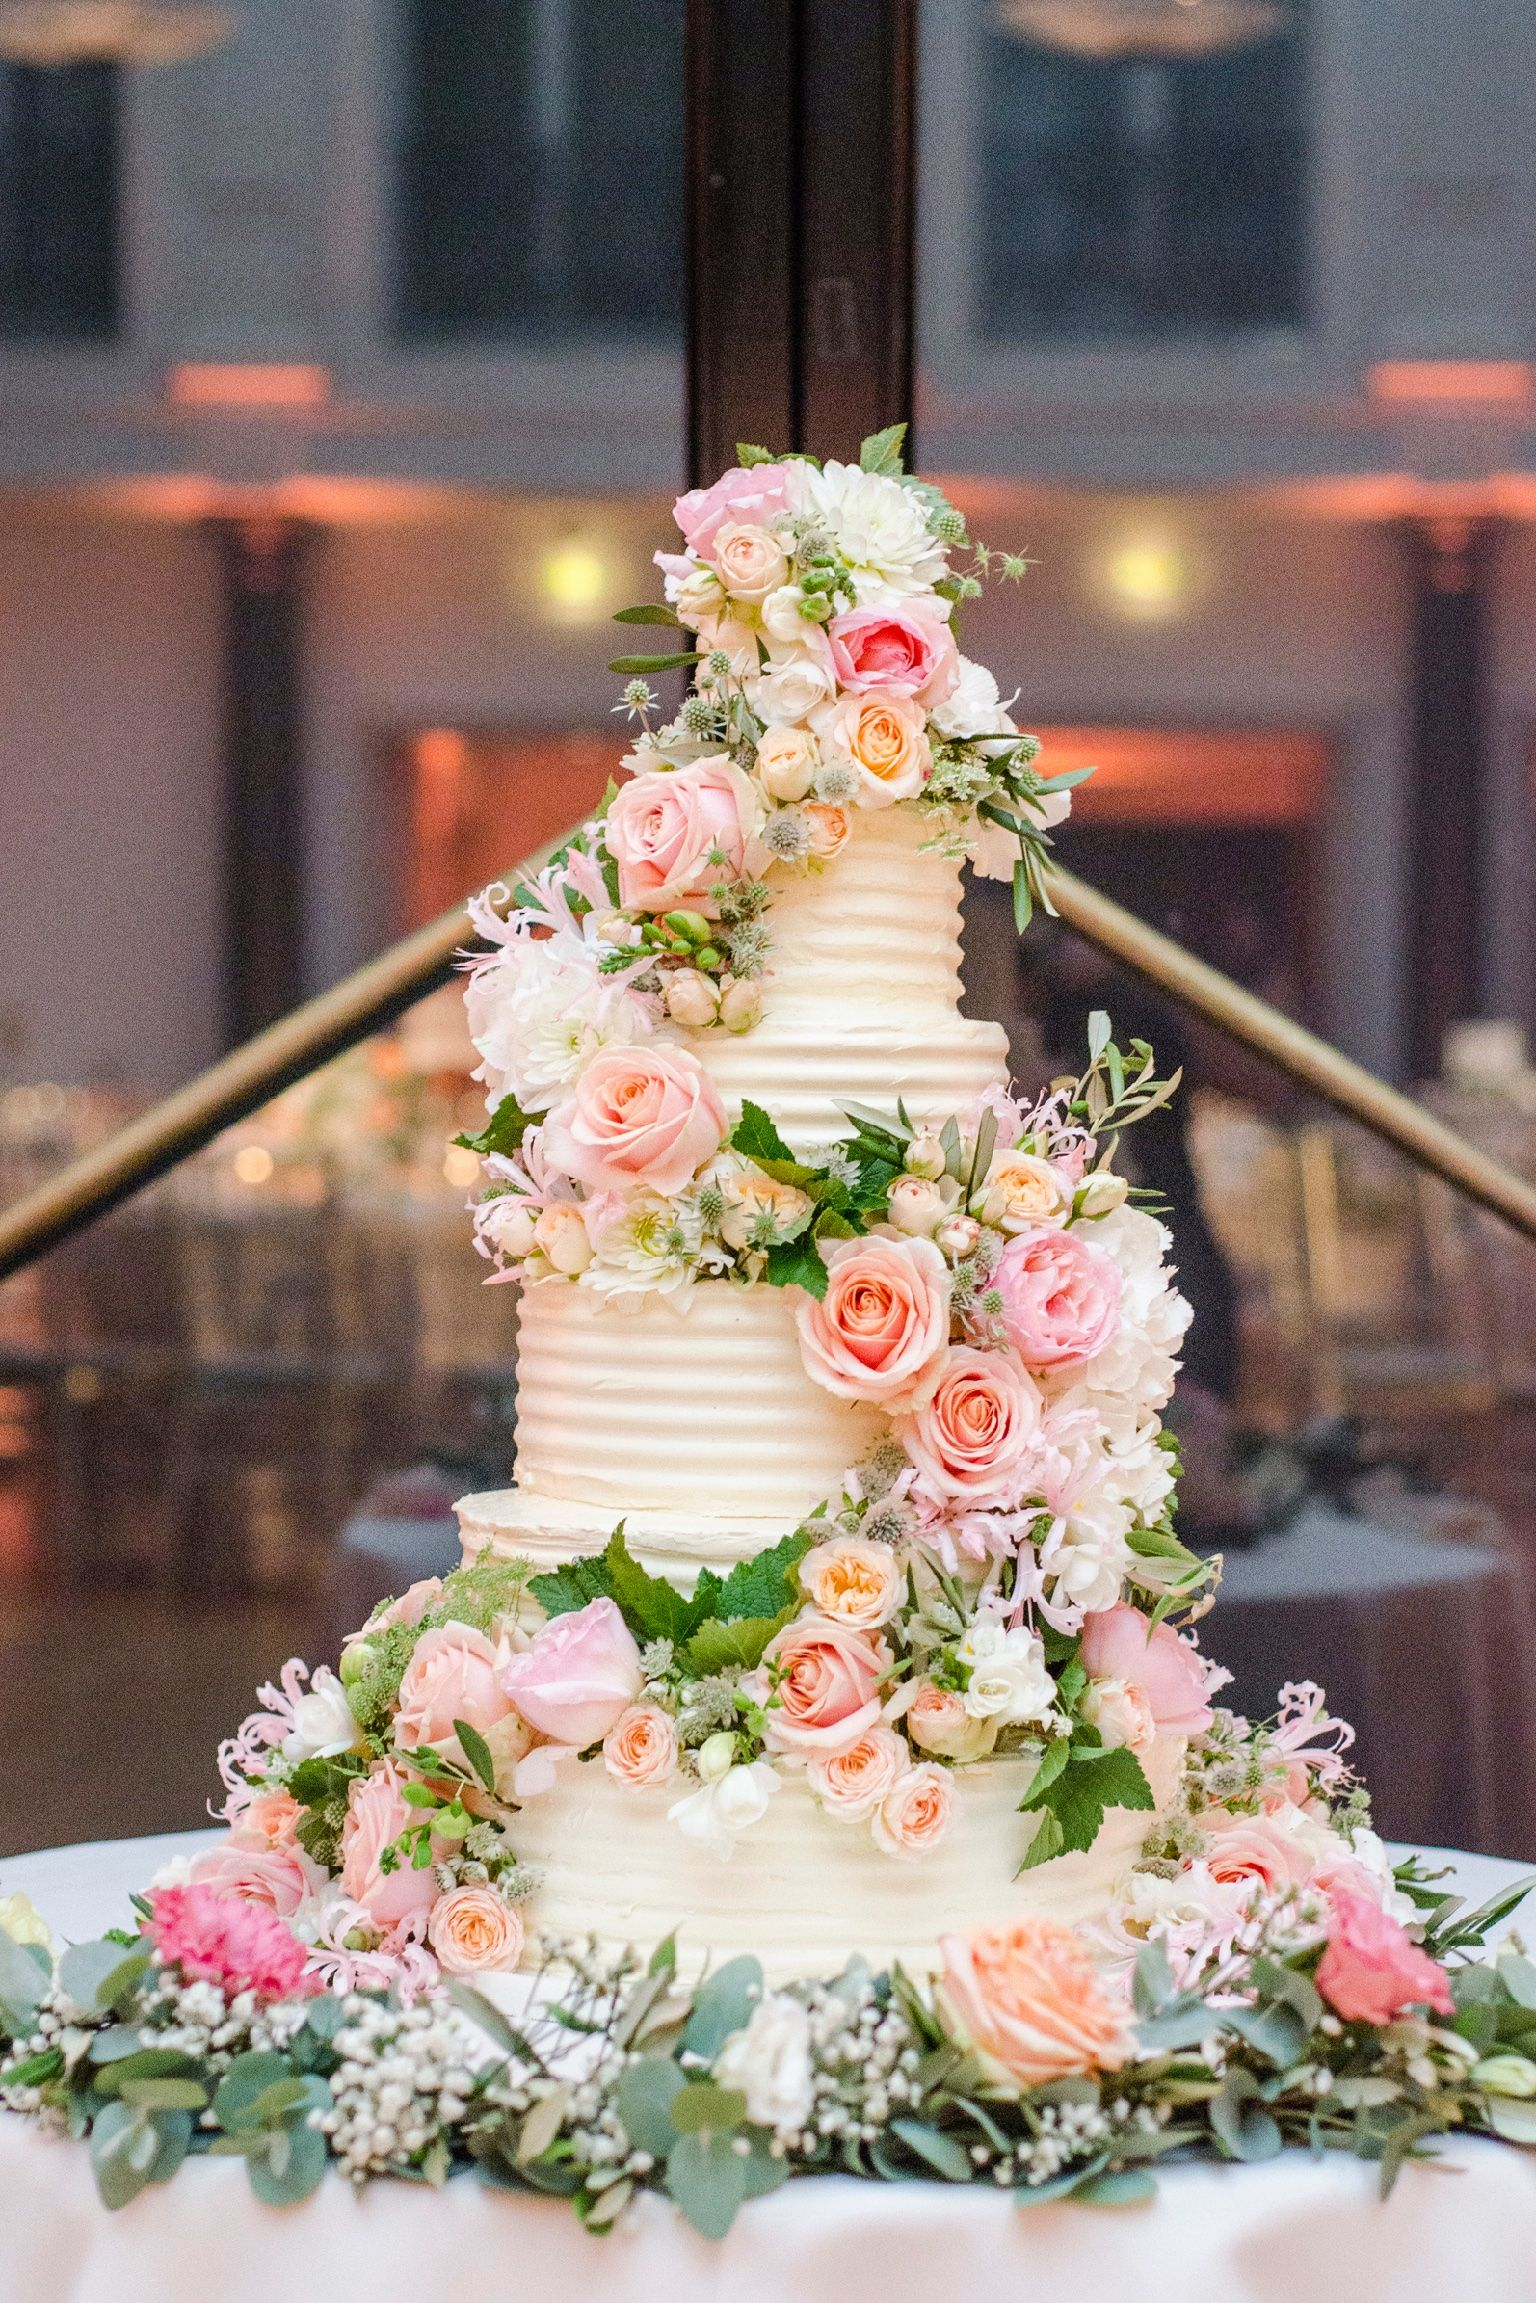 Floral wedding cake synies wedding cake toppers